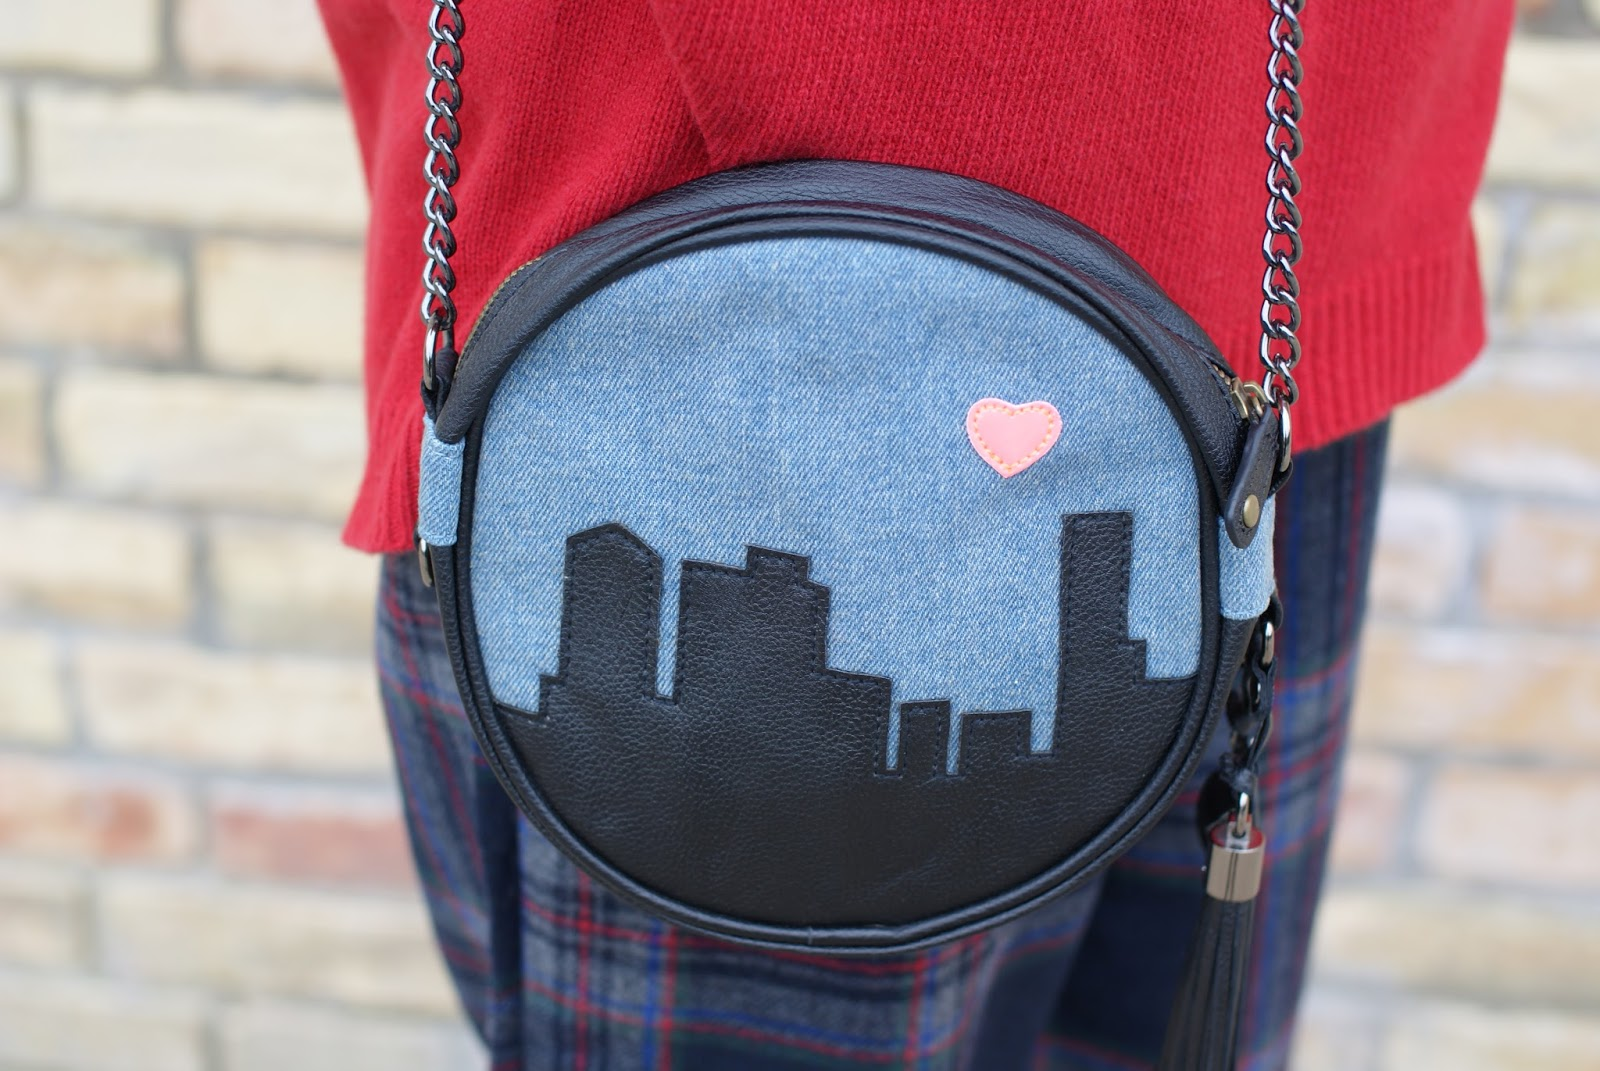 Stussy love made New York bag on Fashion and Cookies fashion blog